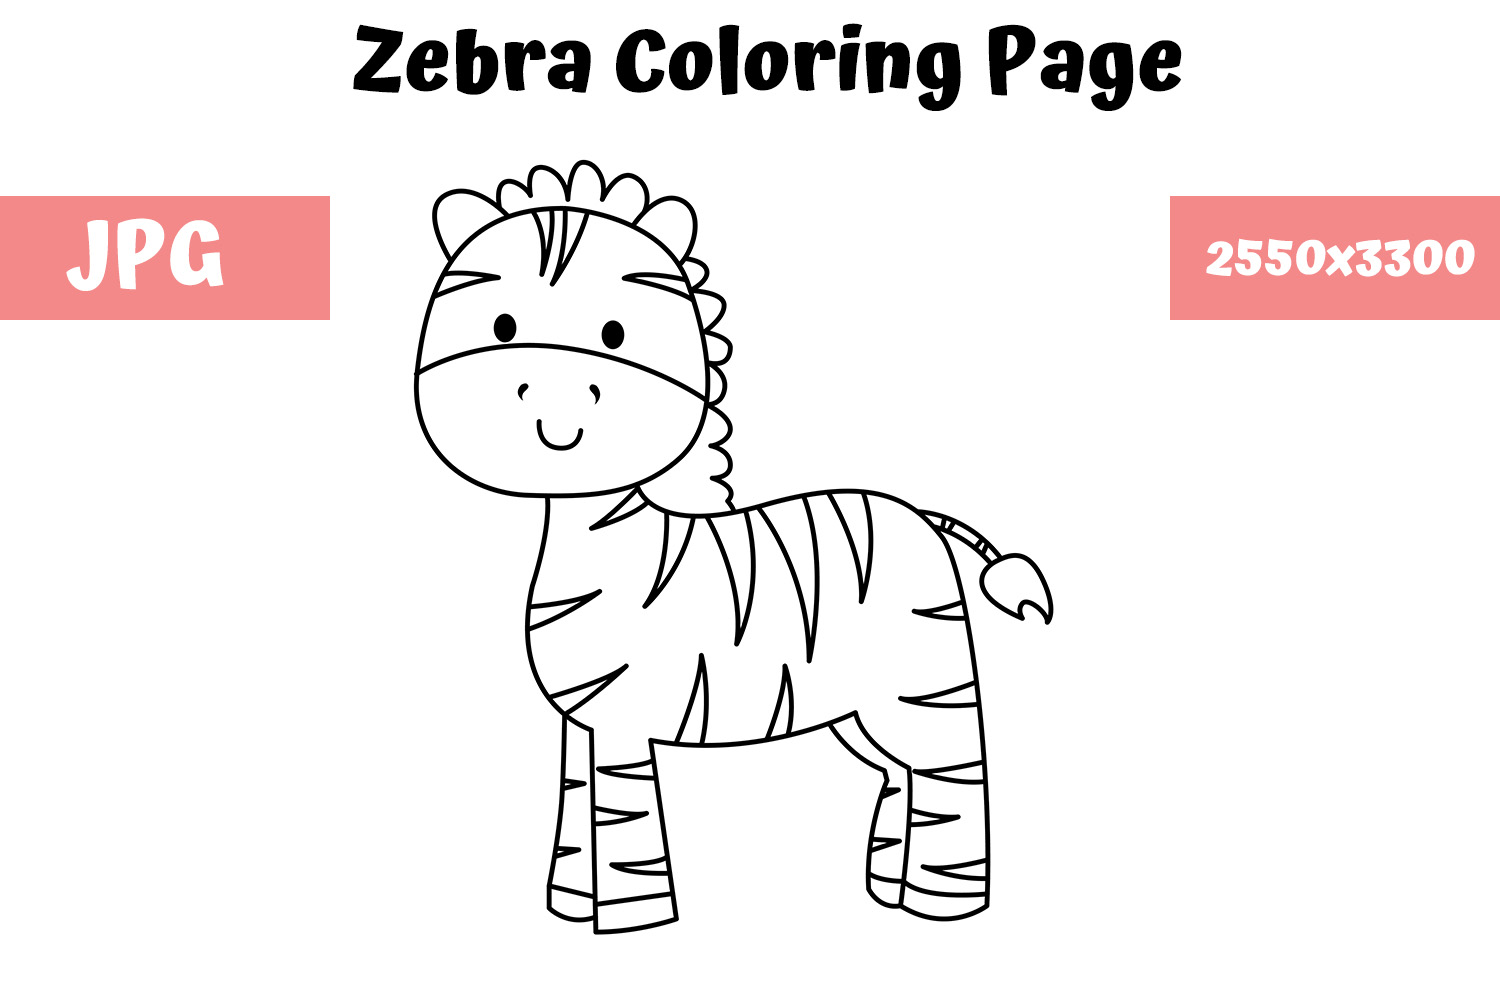 Coloring Page For Kids Zebra Graphic By Mybeautifulfiles Creative Fabrica